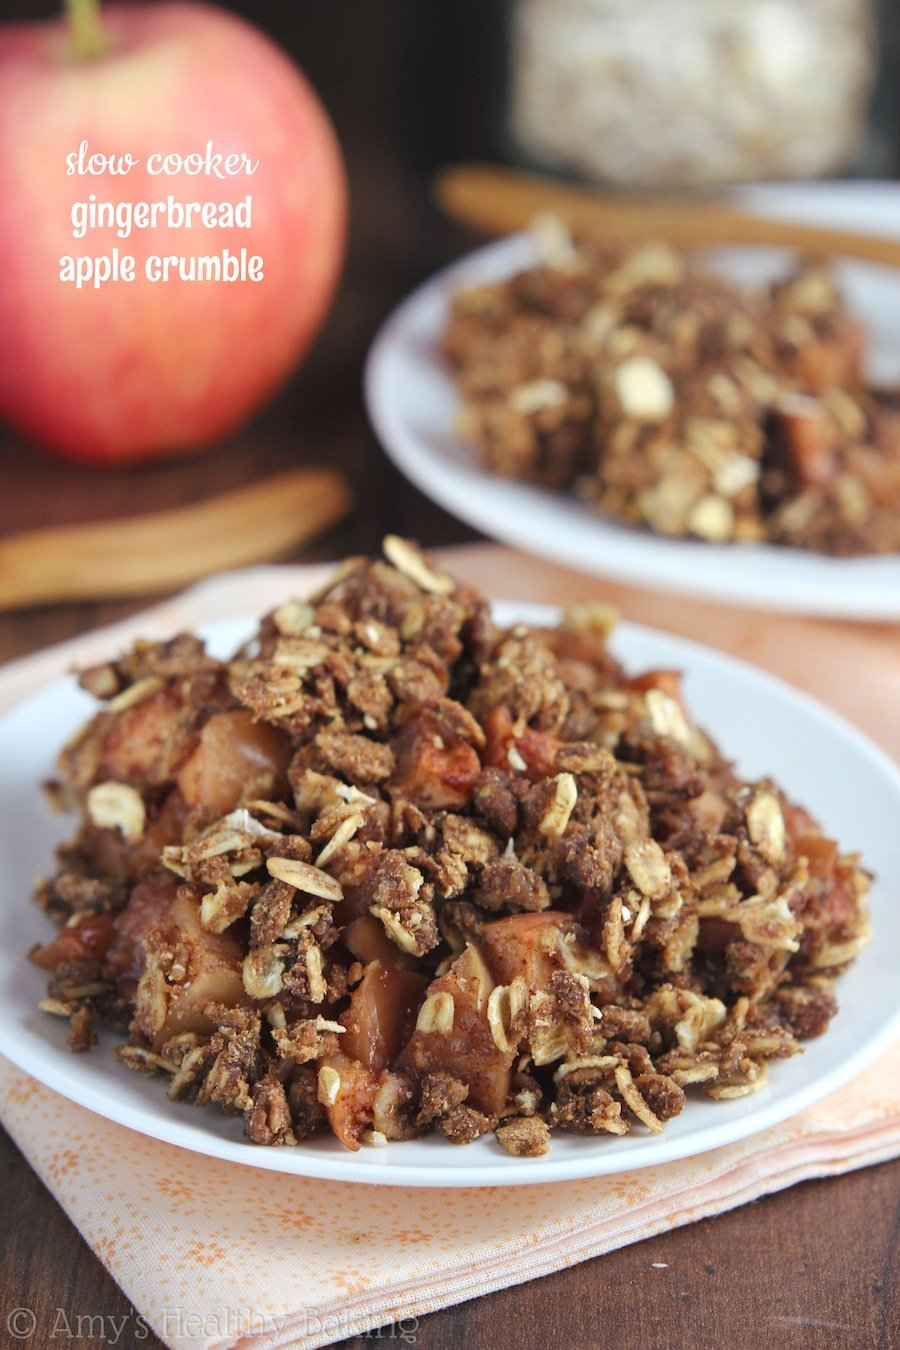 Slow Cooker Gingerbread Apple Crumble